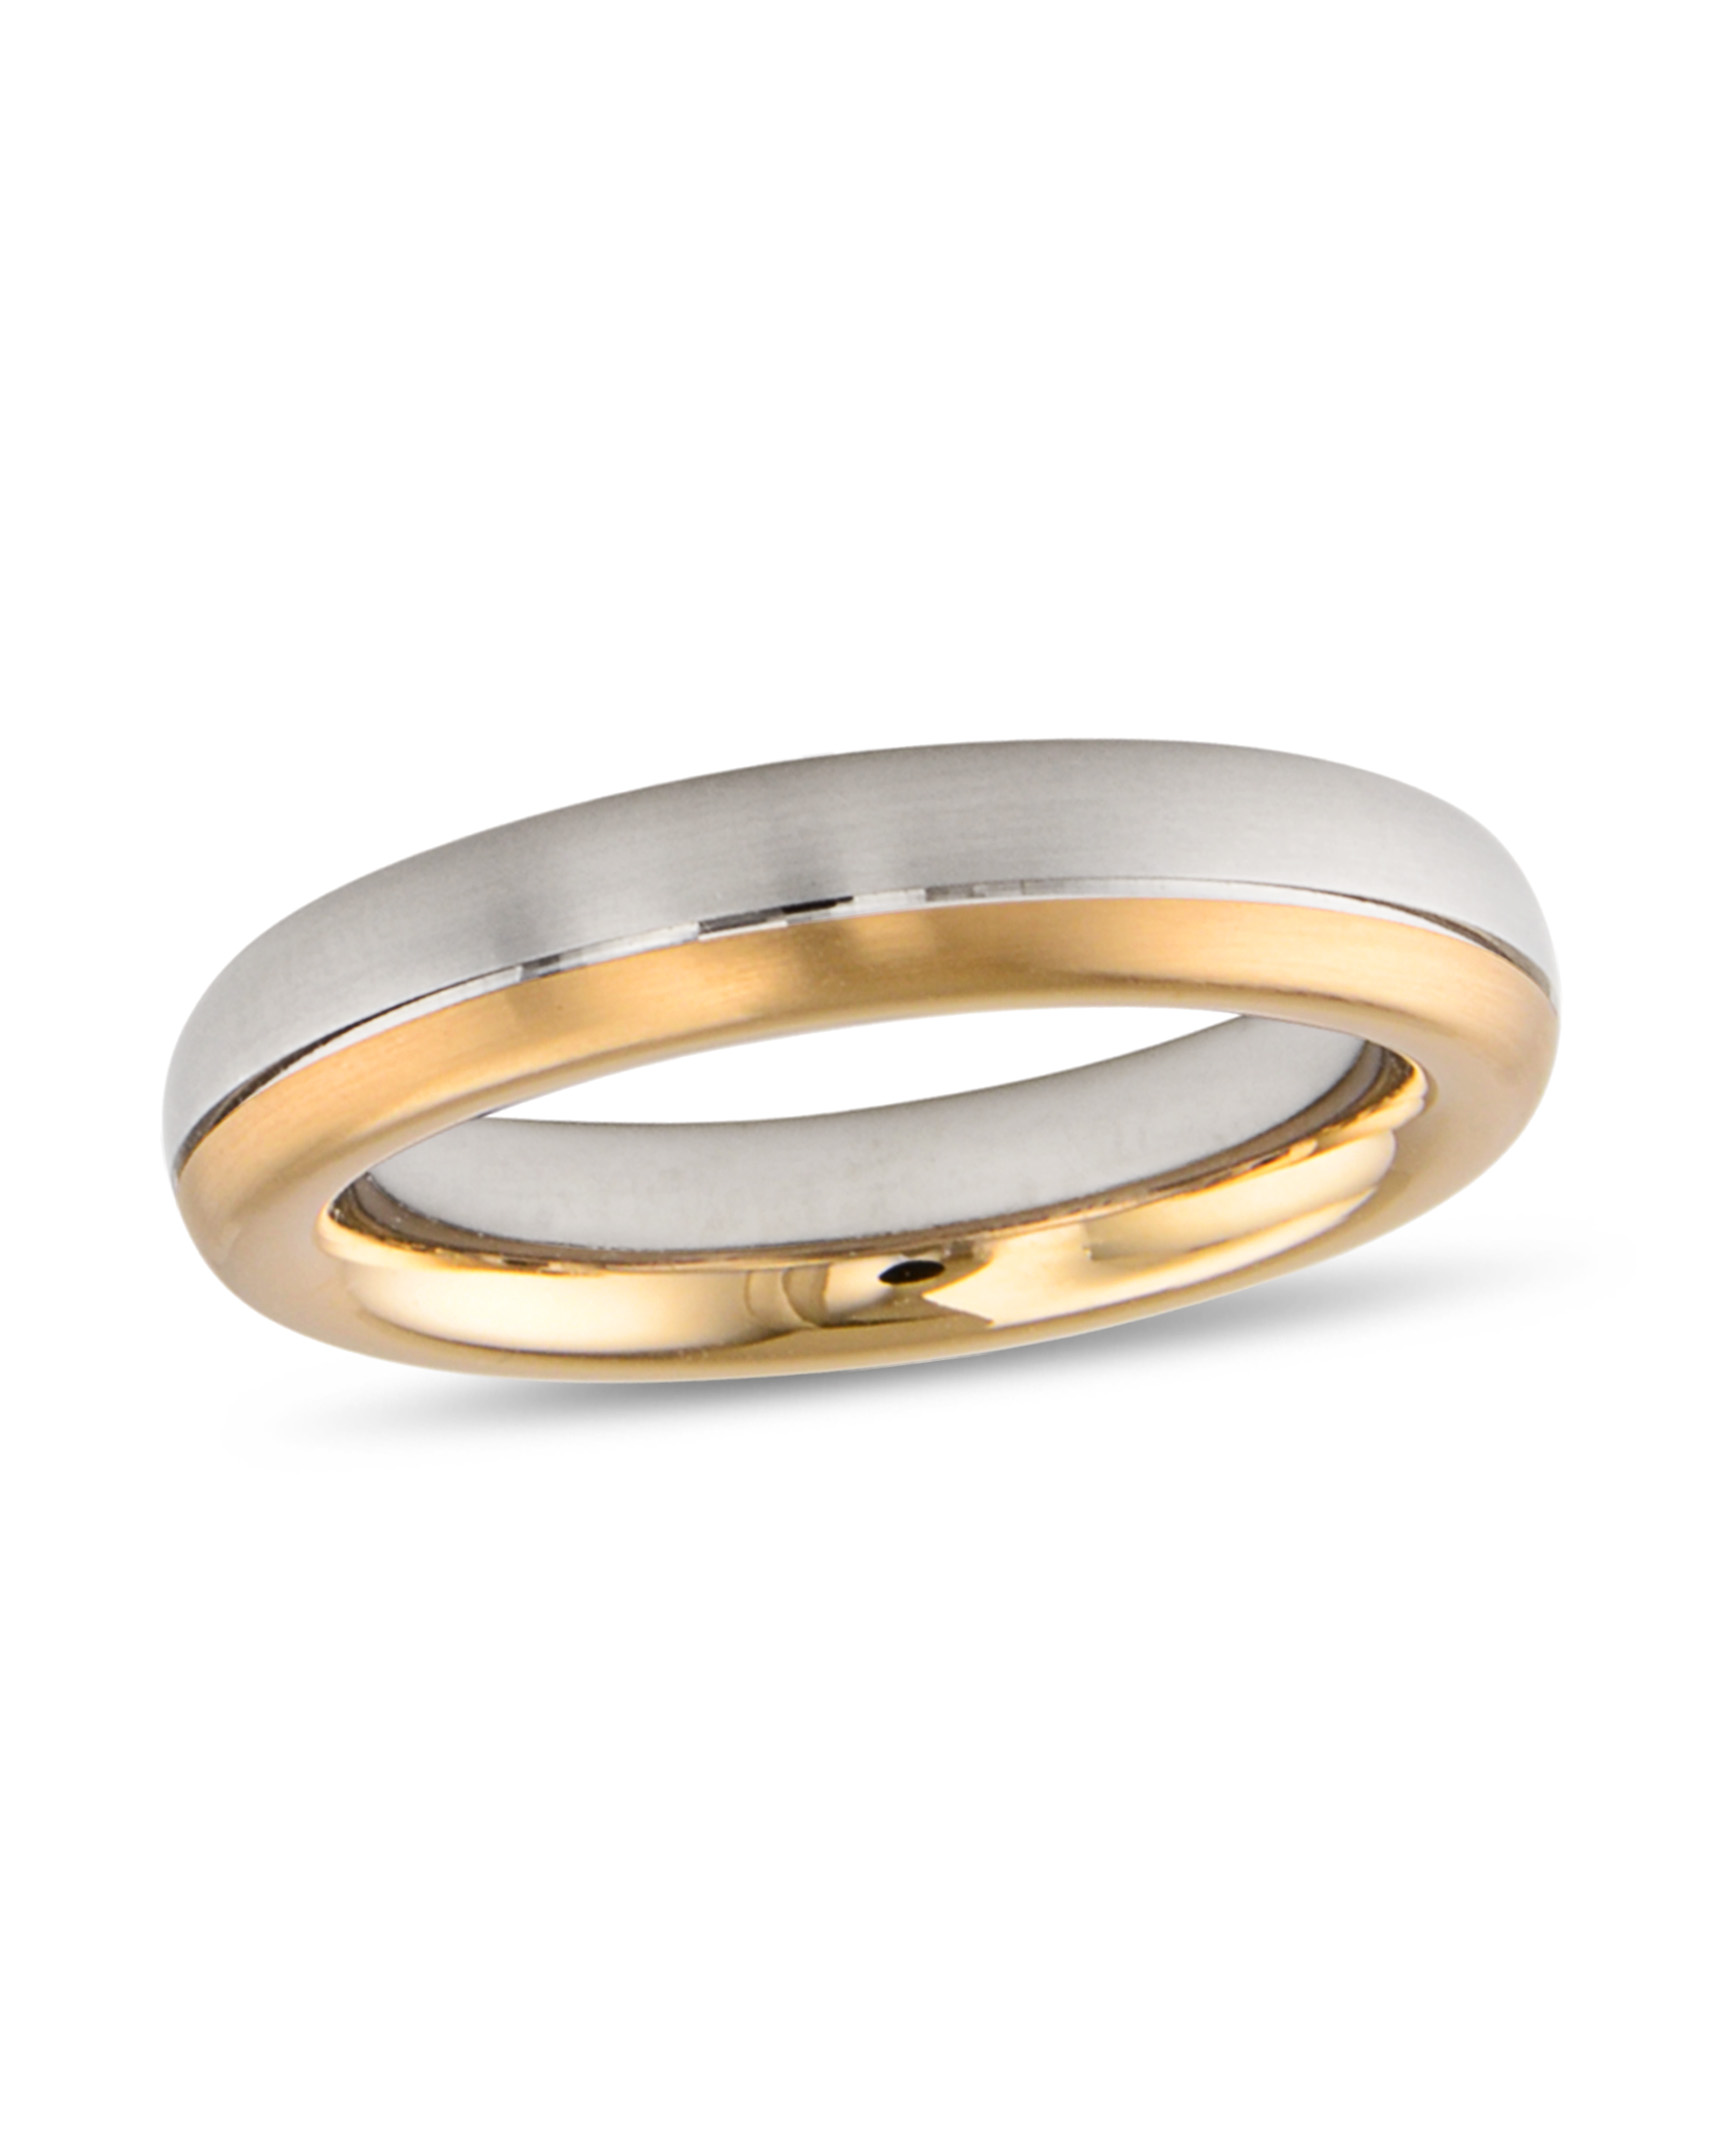 Mens Wedding Band.Men S Wedding Band By Henrich Denzel